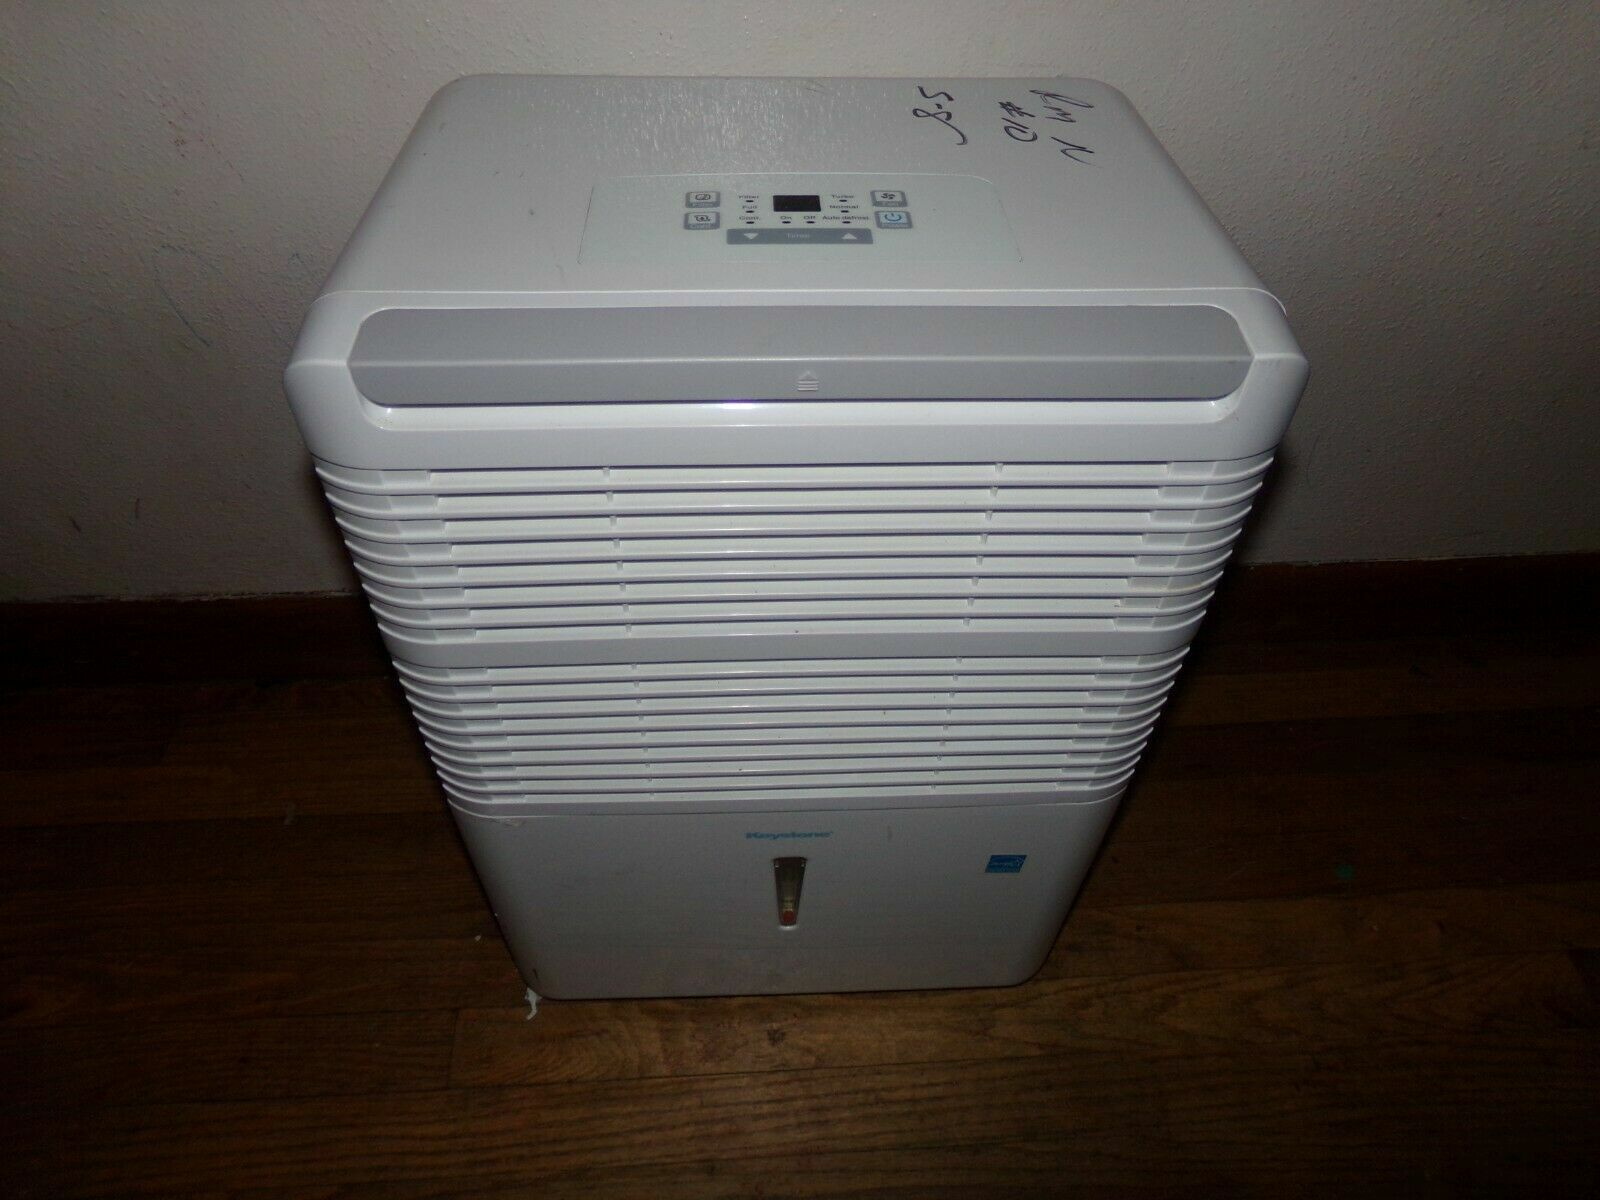 Keystone KSTAD706PB 15 Inch Wide 70 Pint Freestanding Dehumidifier with Built In